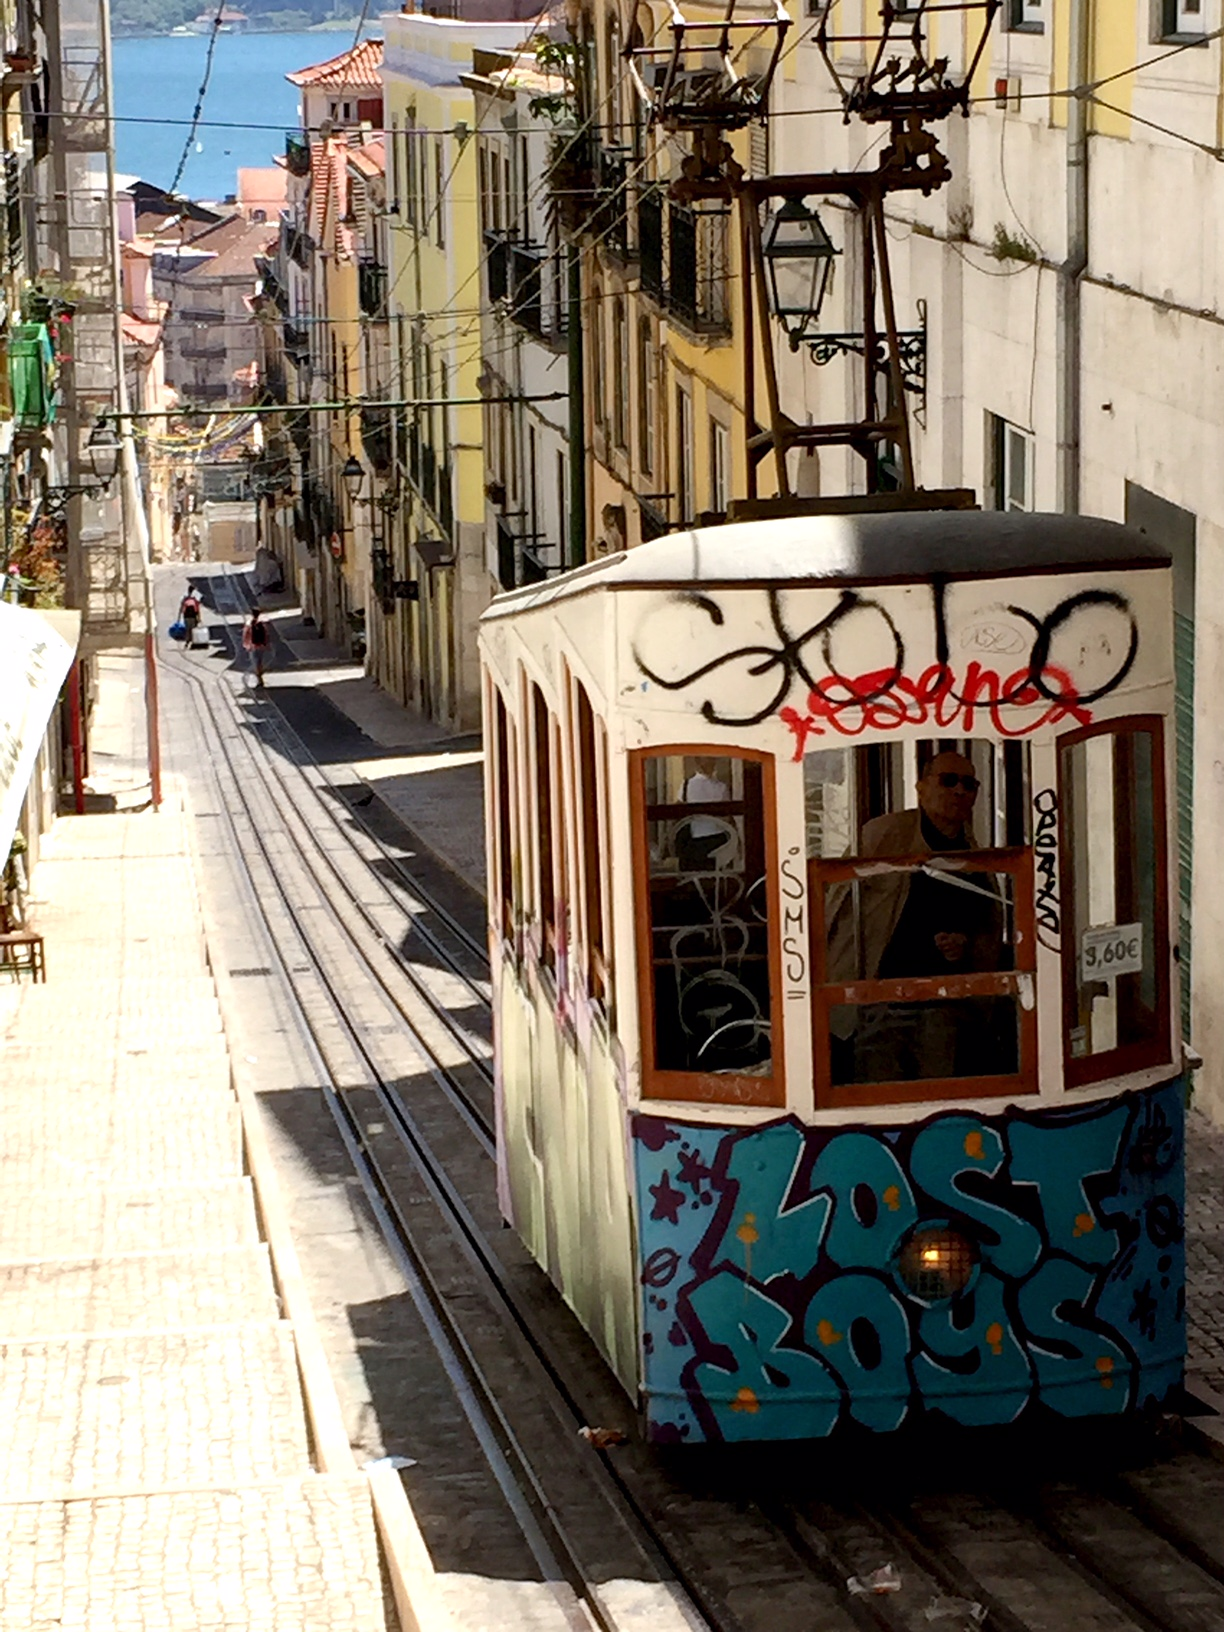 Lisbon's hills and trams